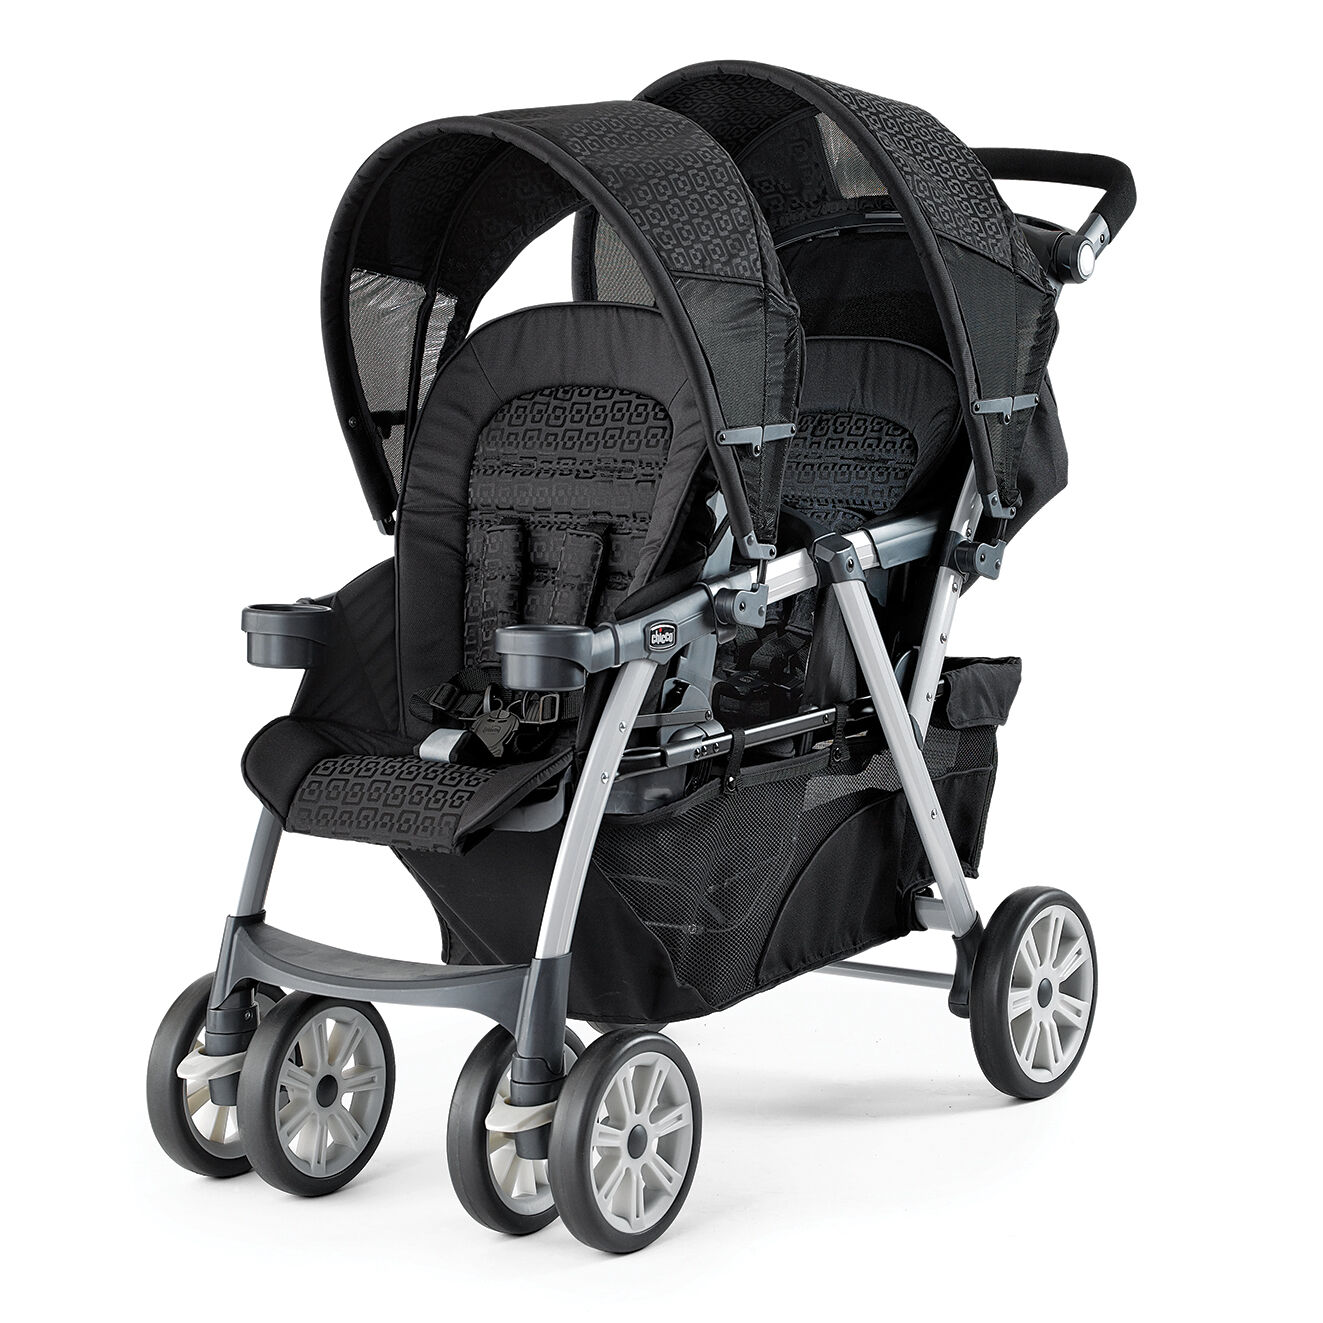 Chicco Cortina Together Double Stroller in a black and gray geometric patterned fabric style called Ombra  sc 1 st  Chicco & Chicco Cortina Together Double Stroller - Ombra islam-shia.org